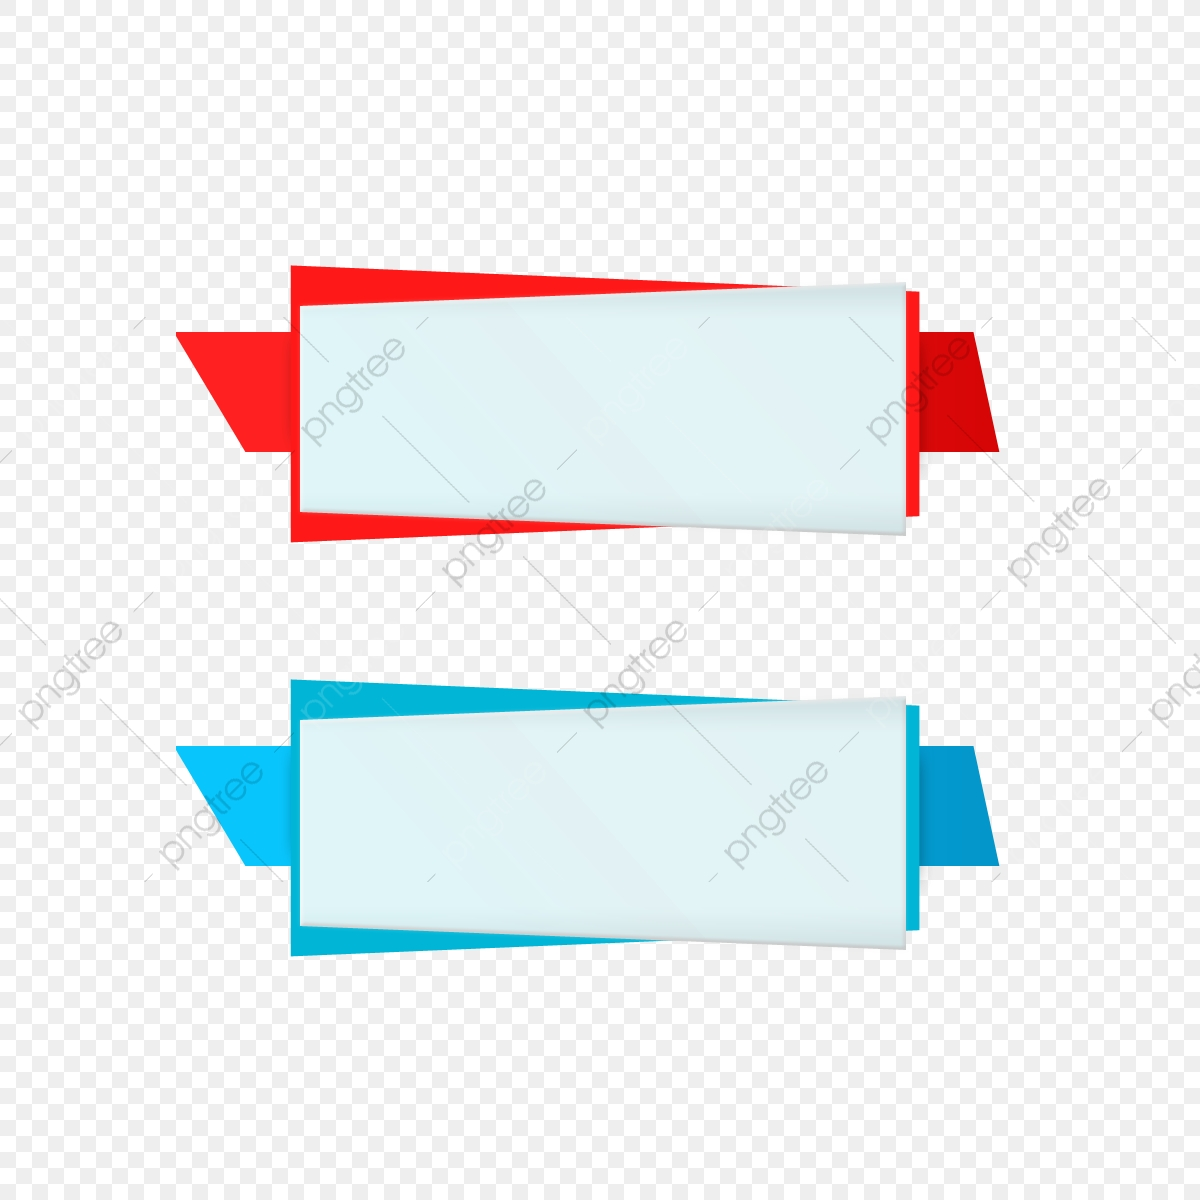 Vector Banner Design Psd Free Download, Text Box, Banner.